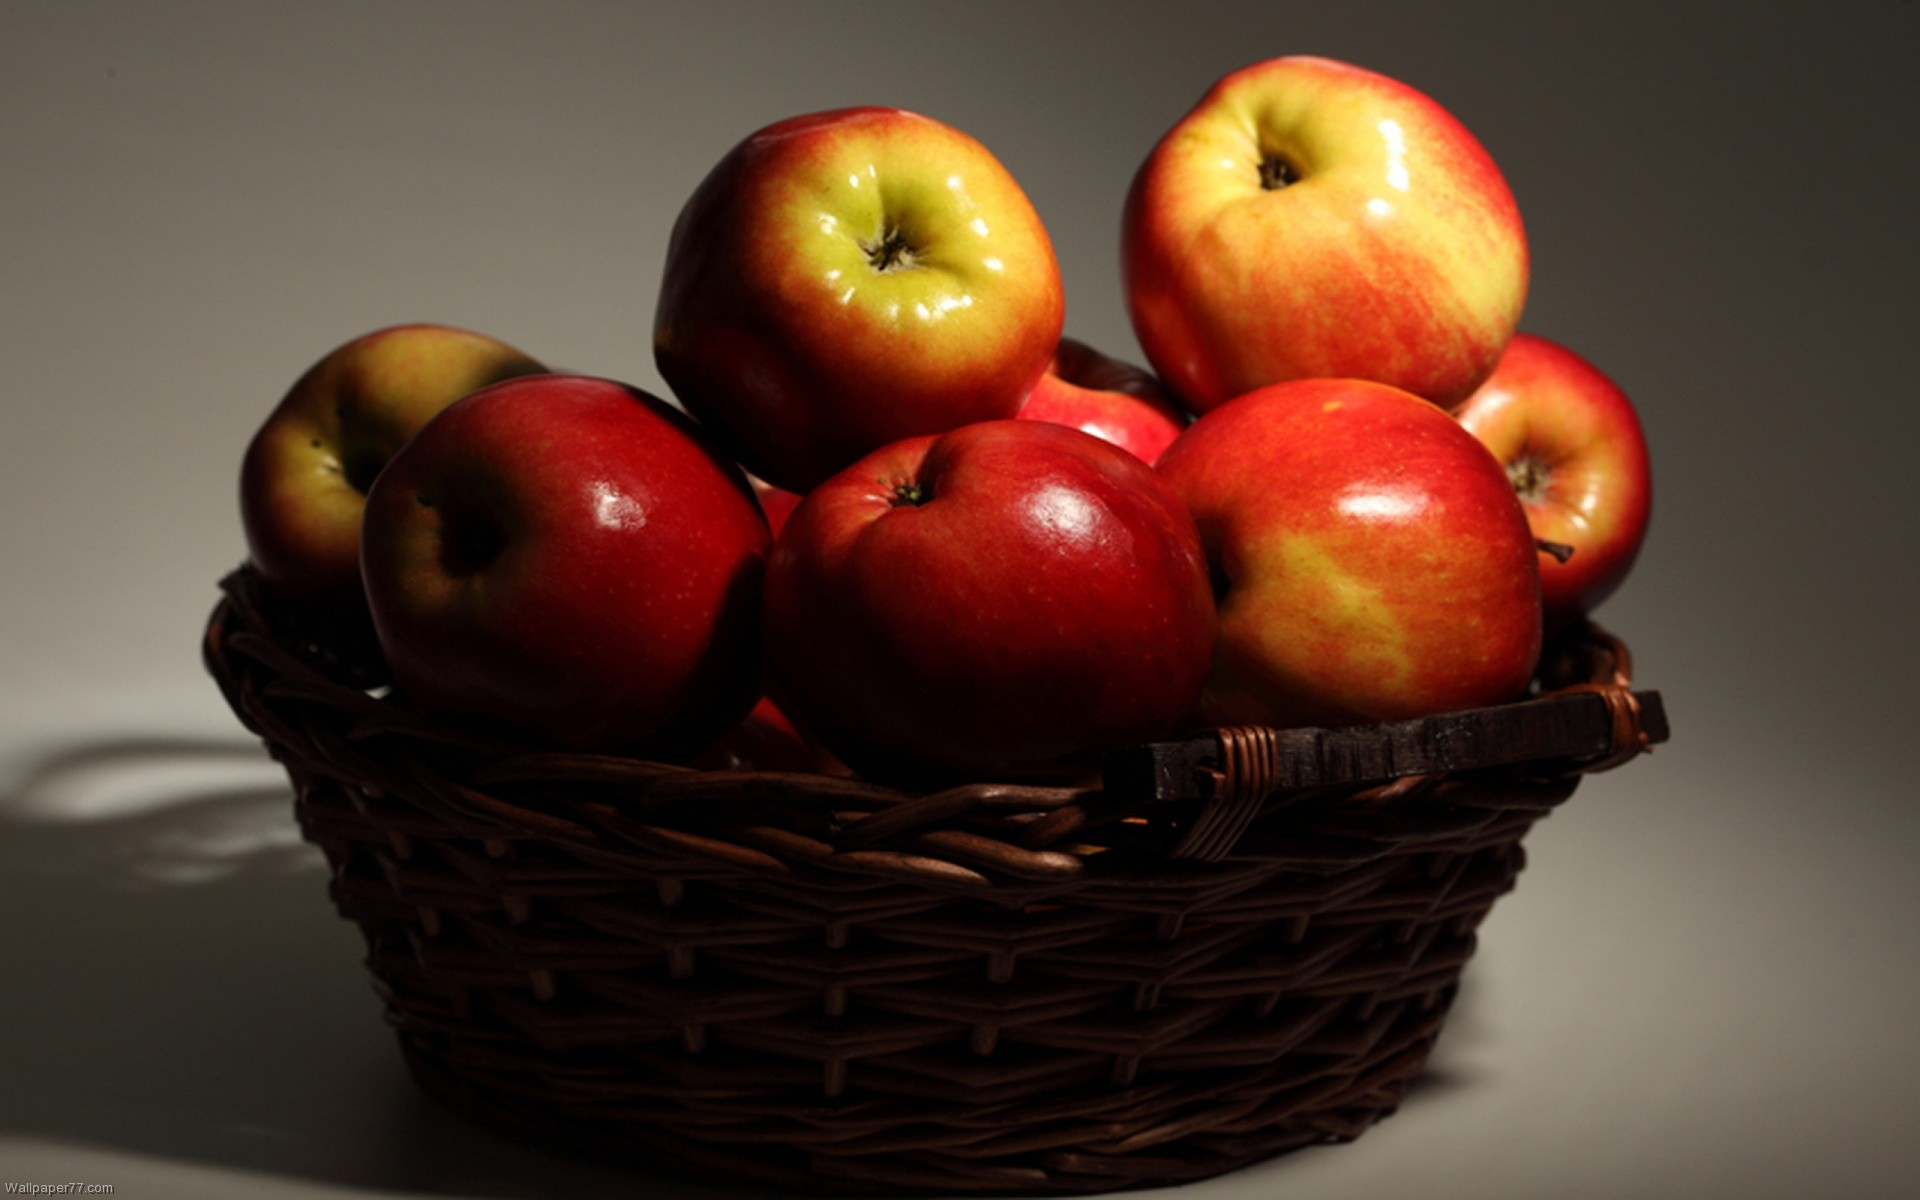 Apple Fruit Desktop Wallpaper PC Android iPhone and iPad Wallpapers 1920x1200